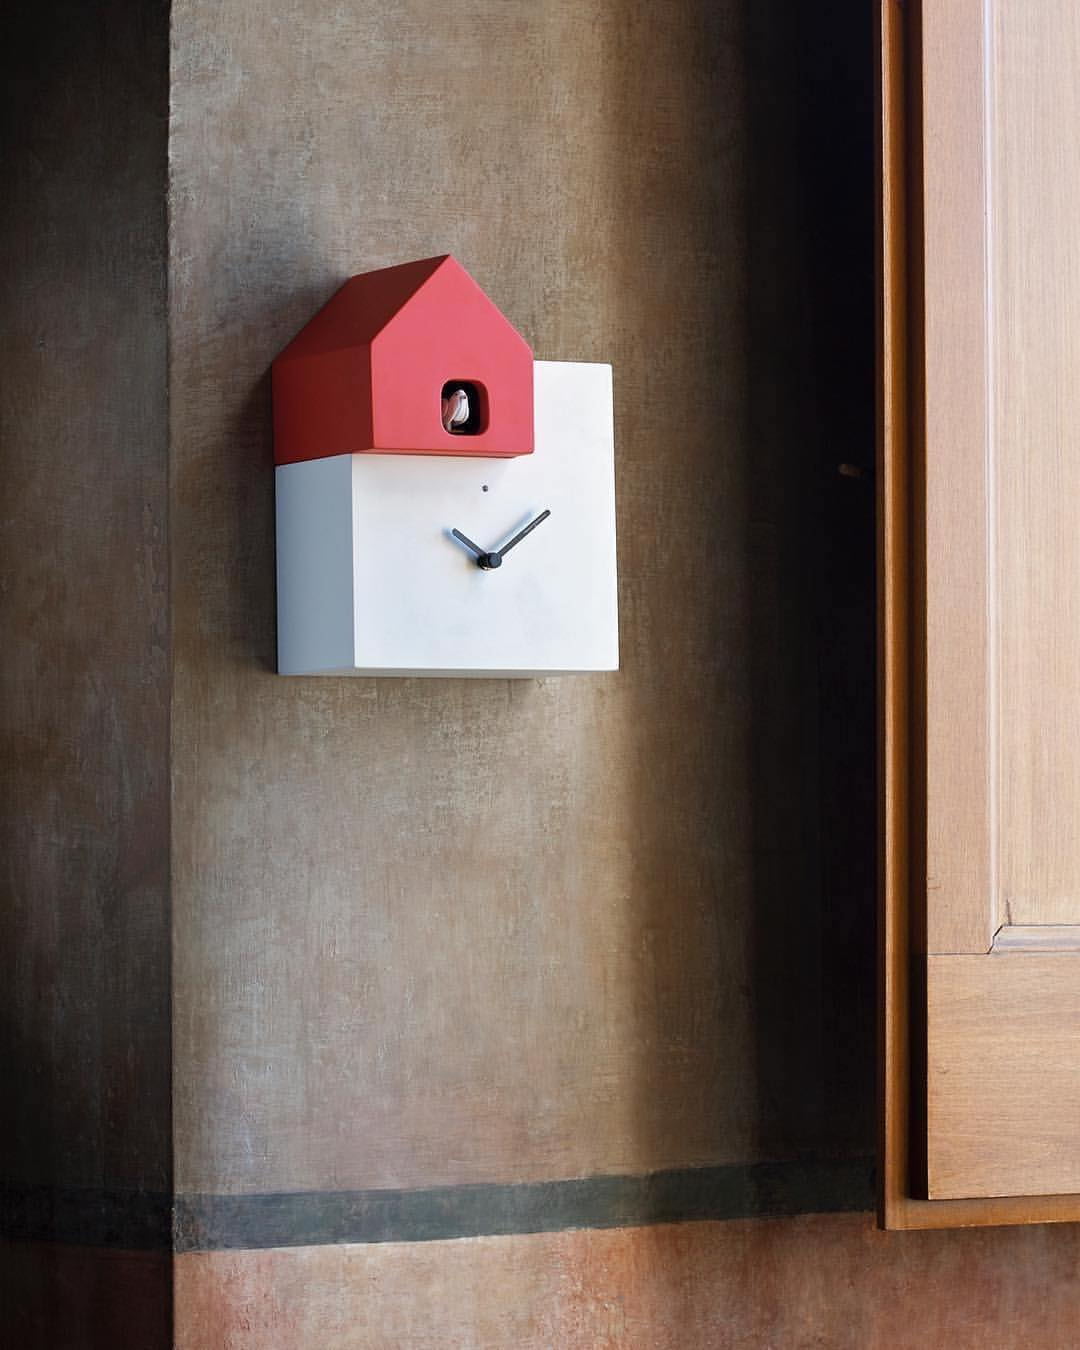 Ettore cuckoo clock, design Arianna Subri 2013, Diamantini Domeniconi